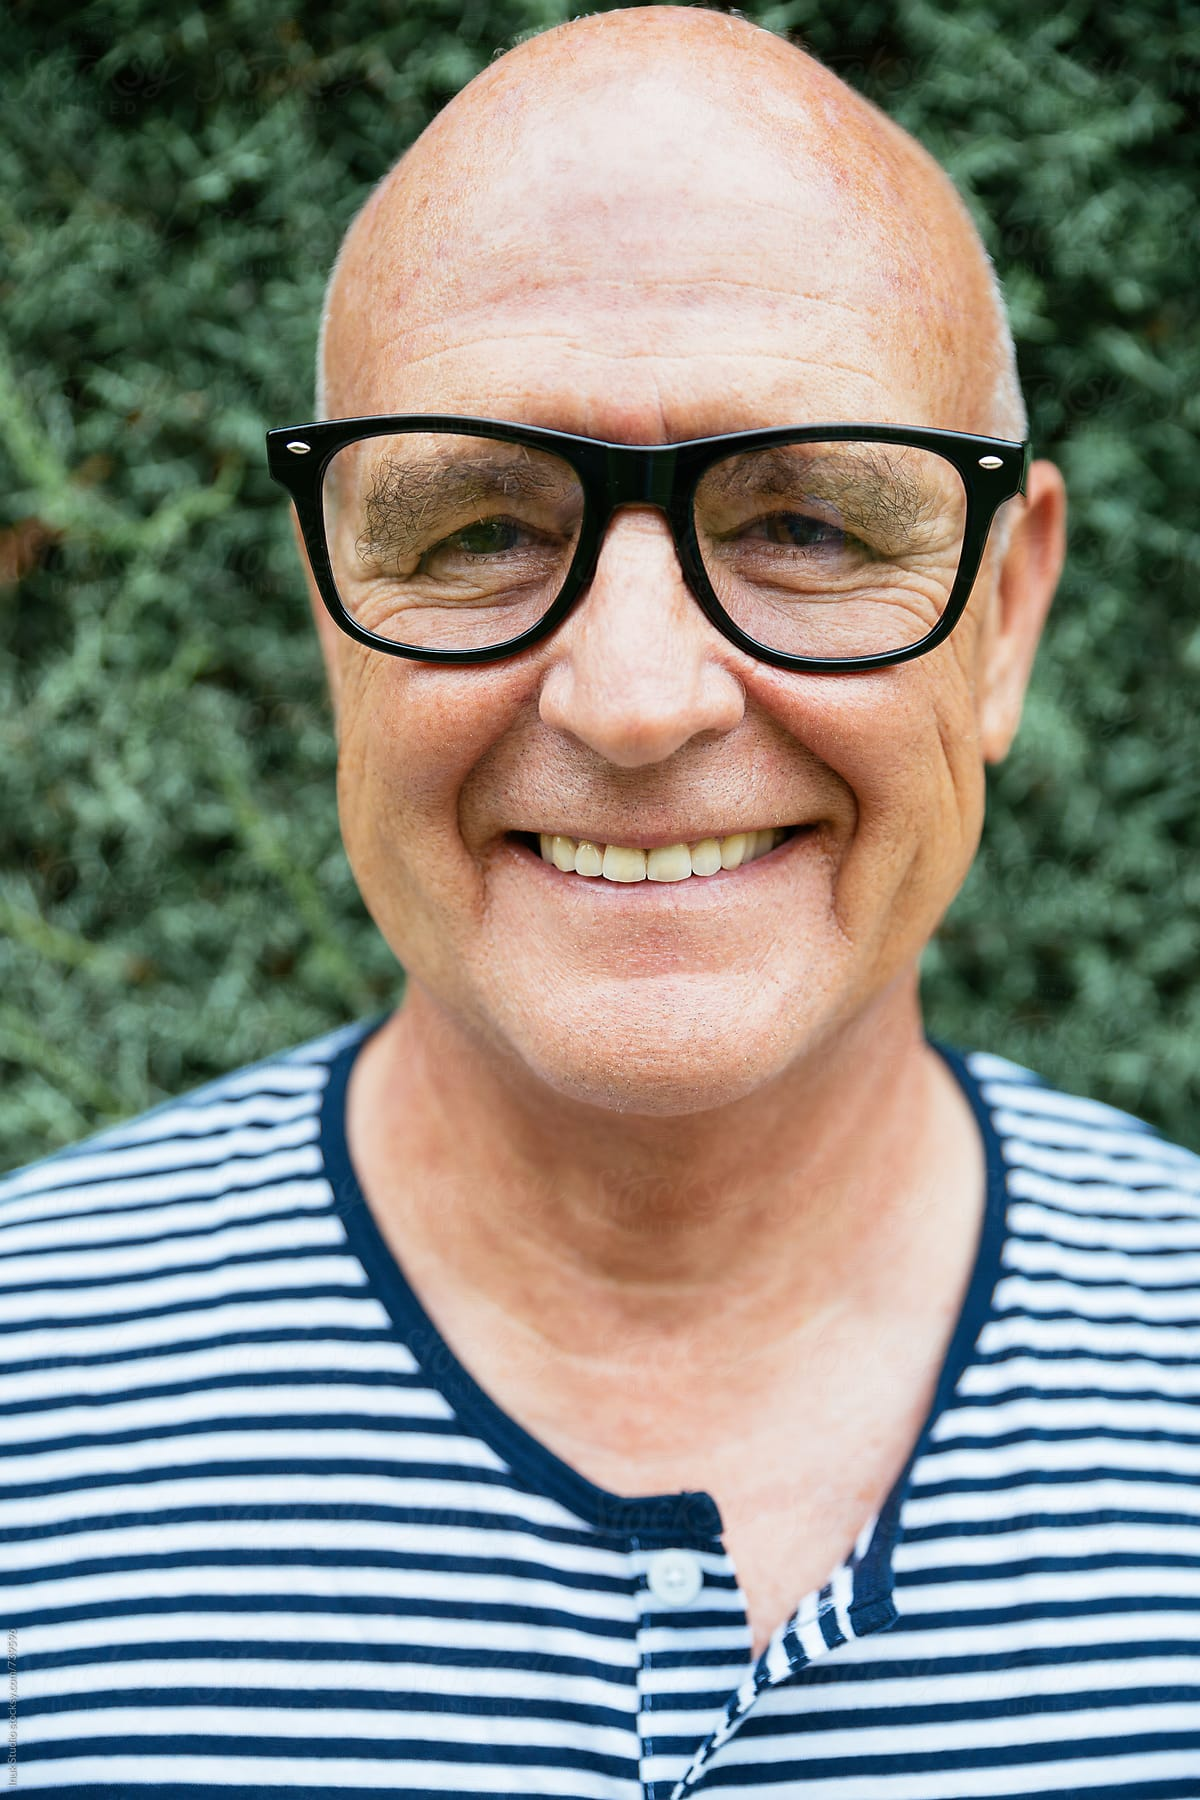 Glasses stylish for bald men exclusive photo